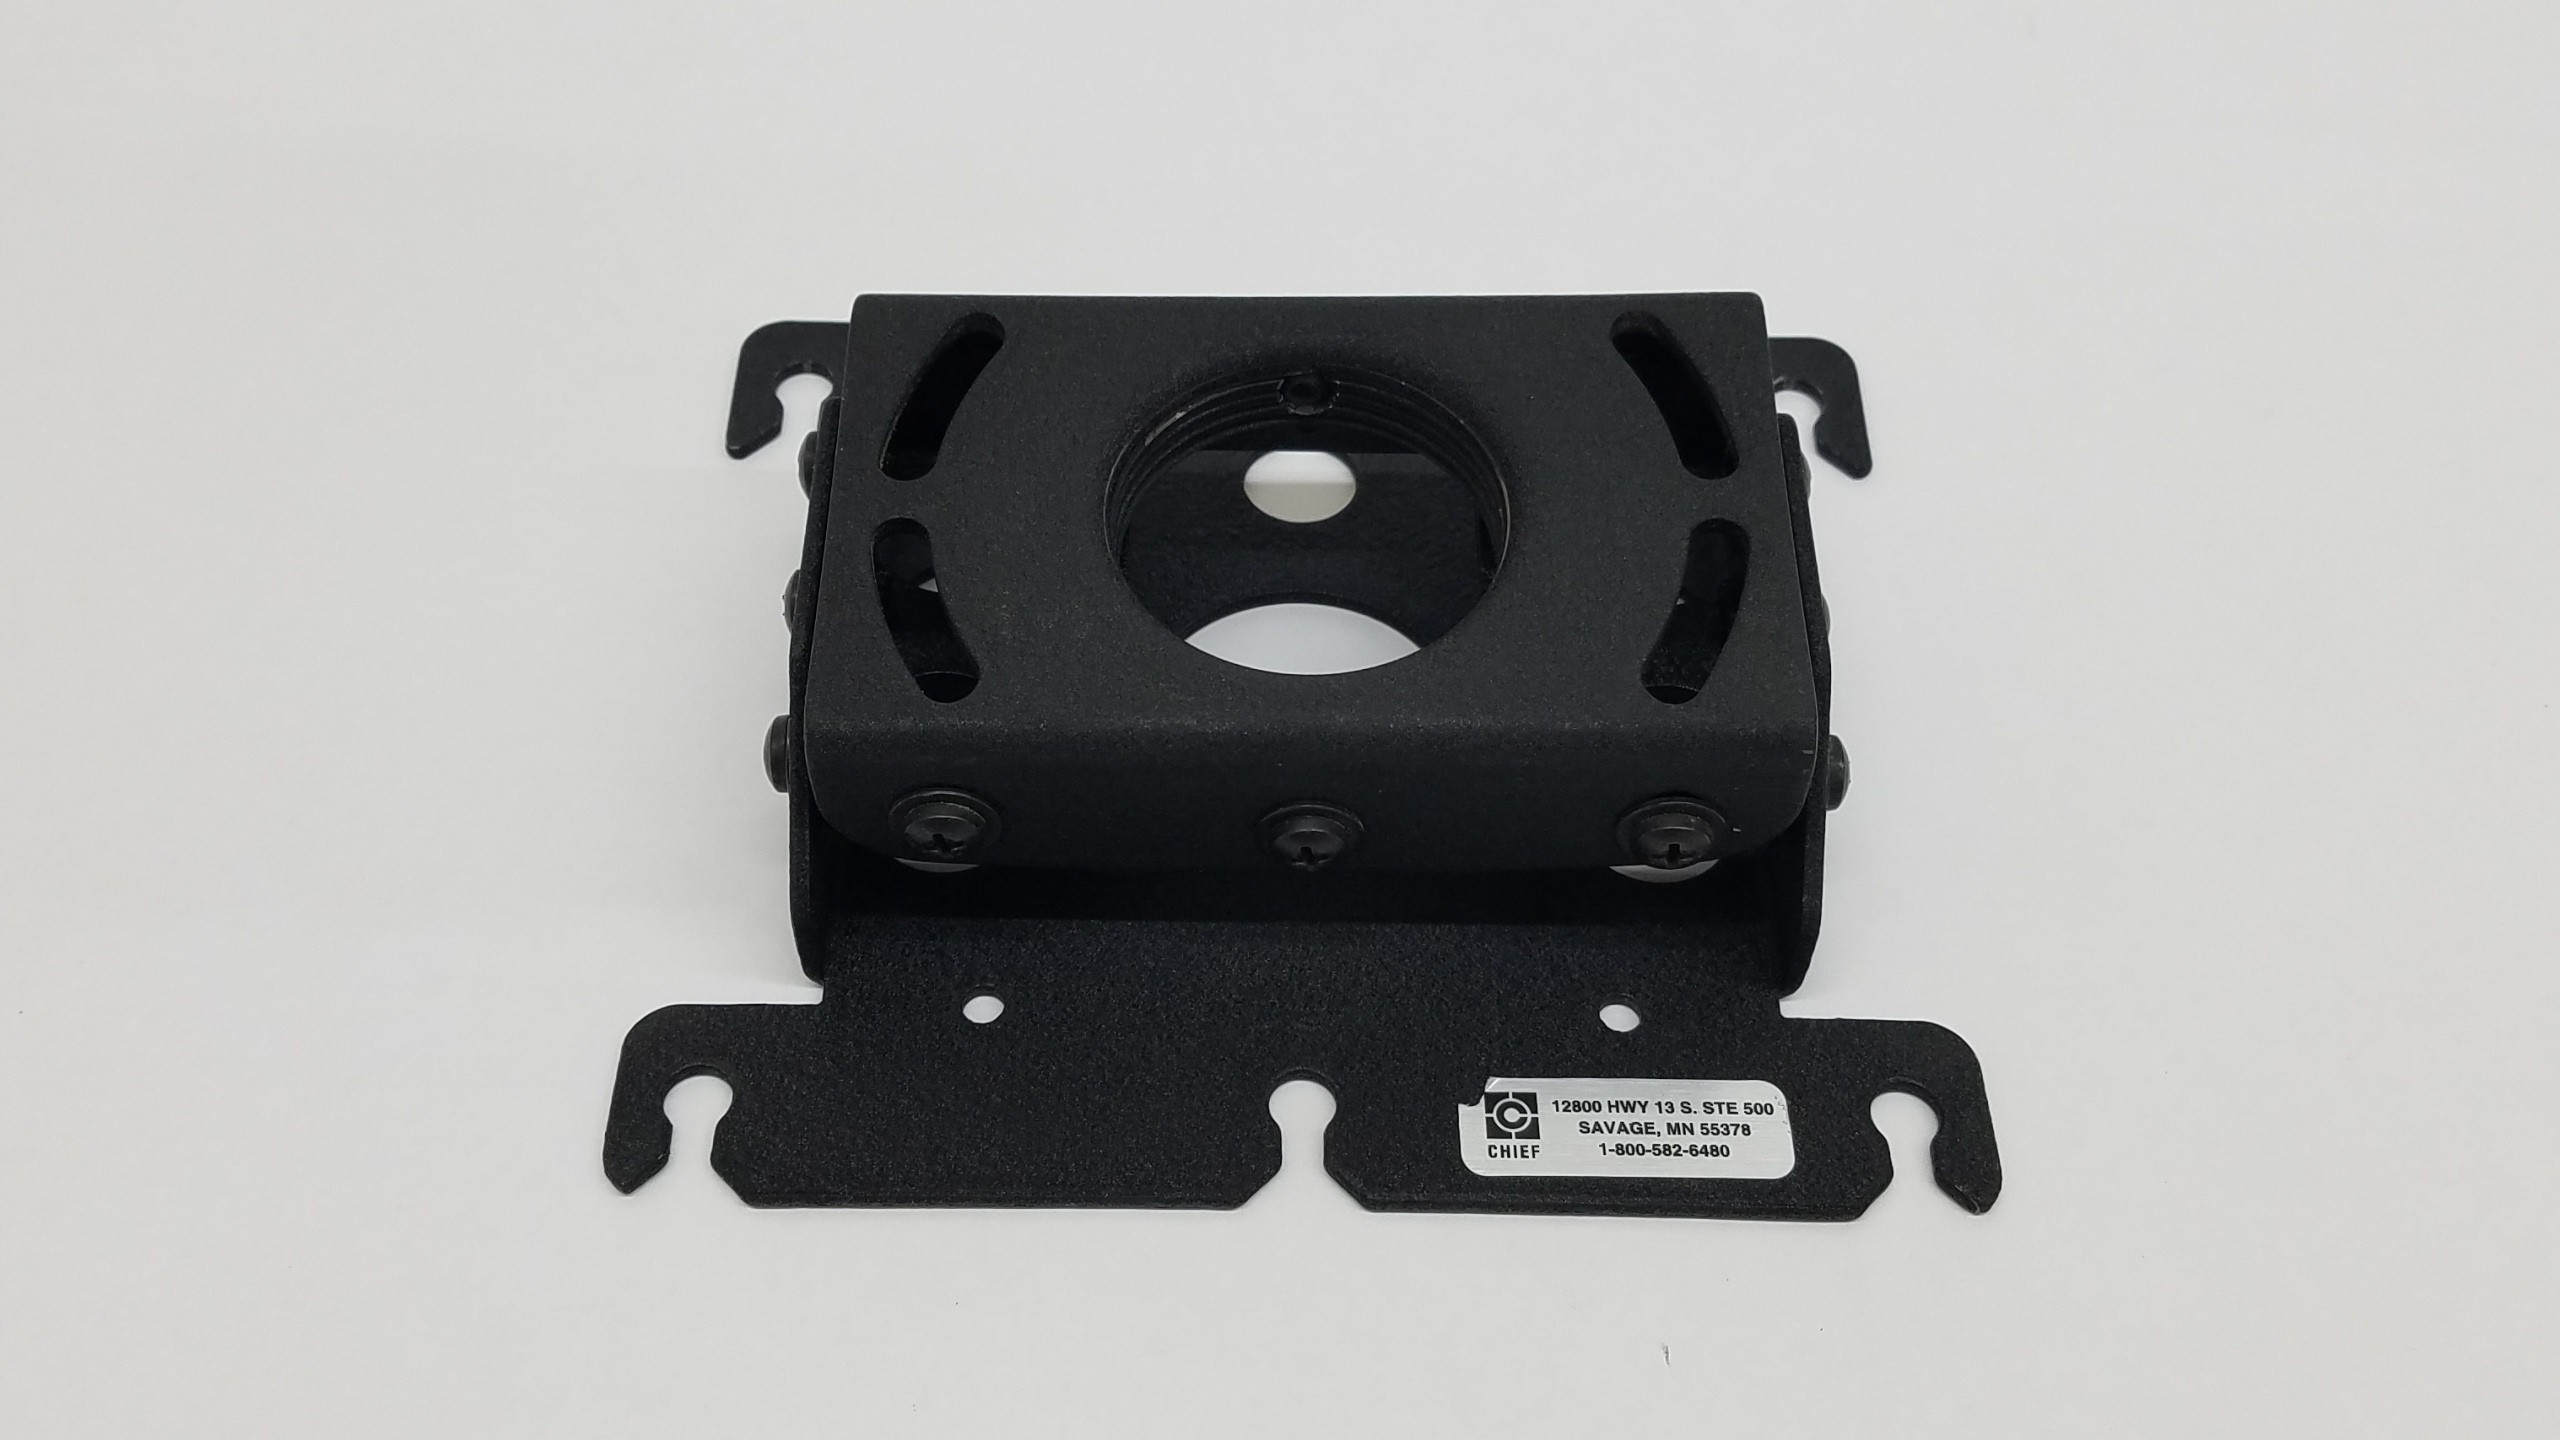 Chief Universal RPA Series Ceiling Mount